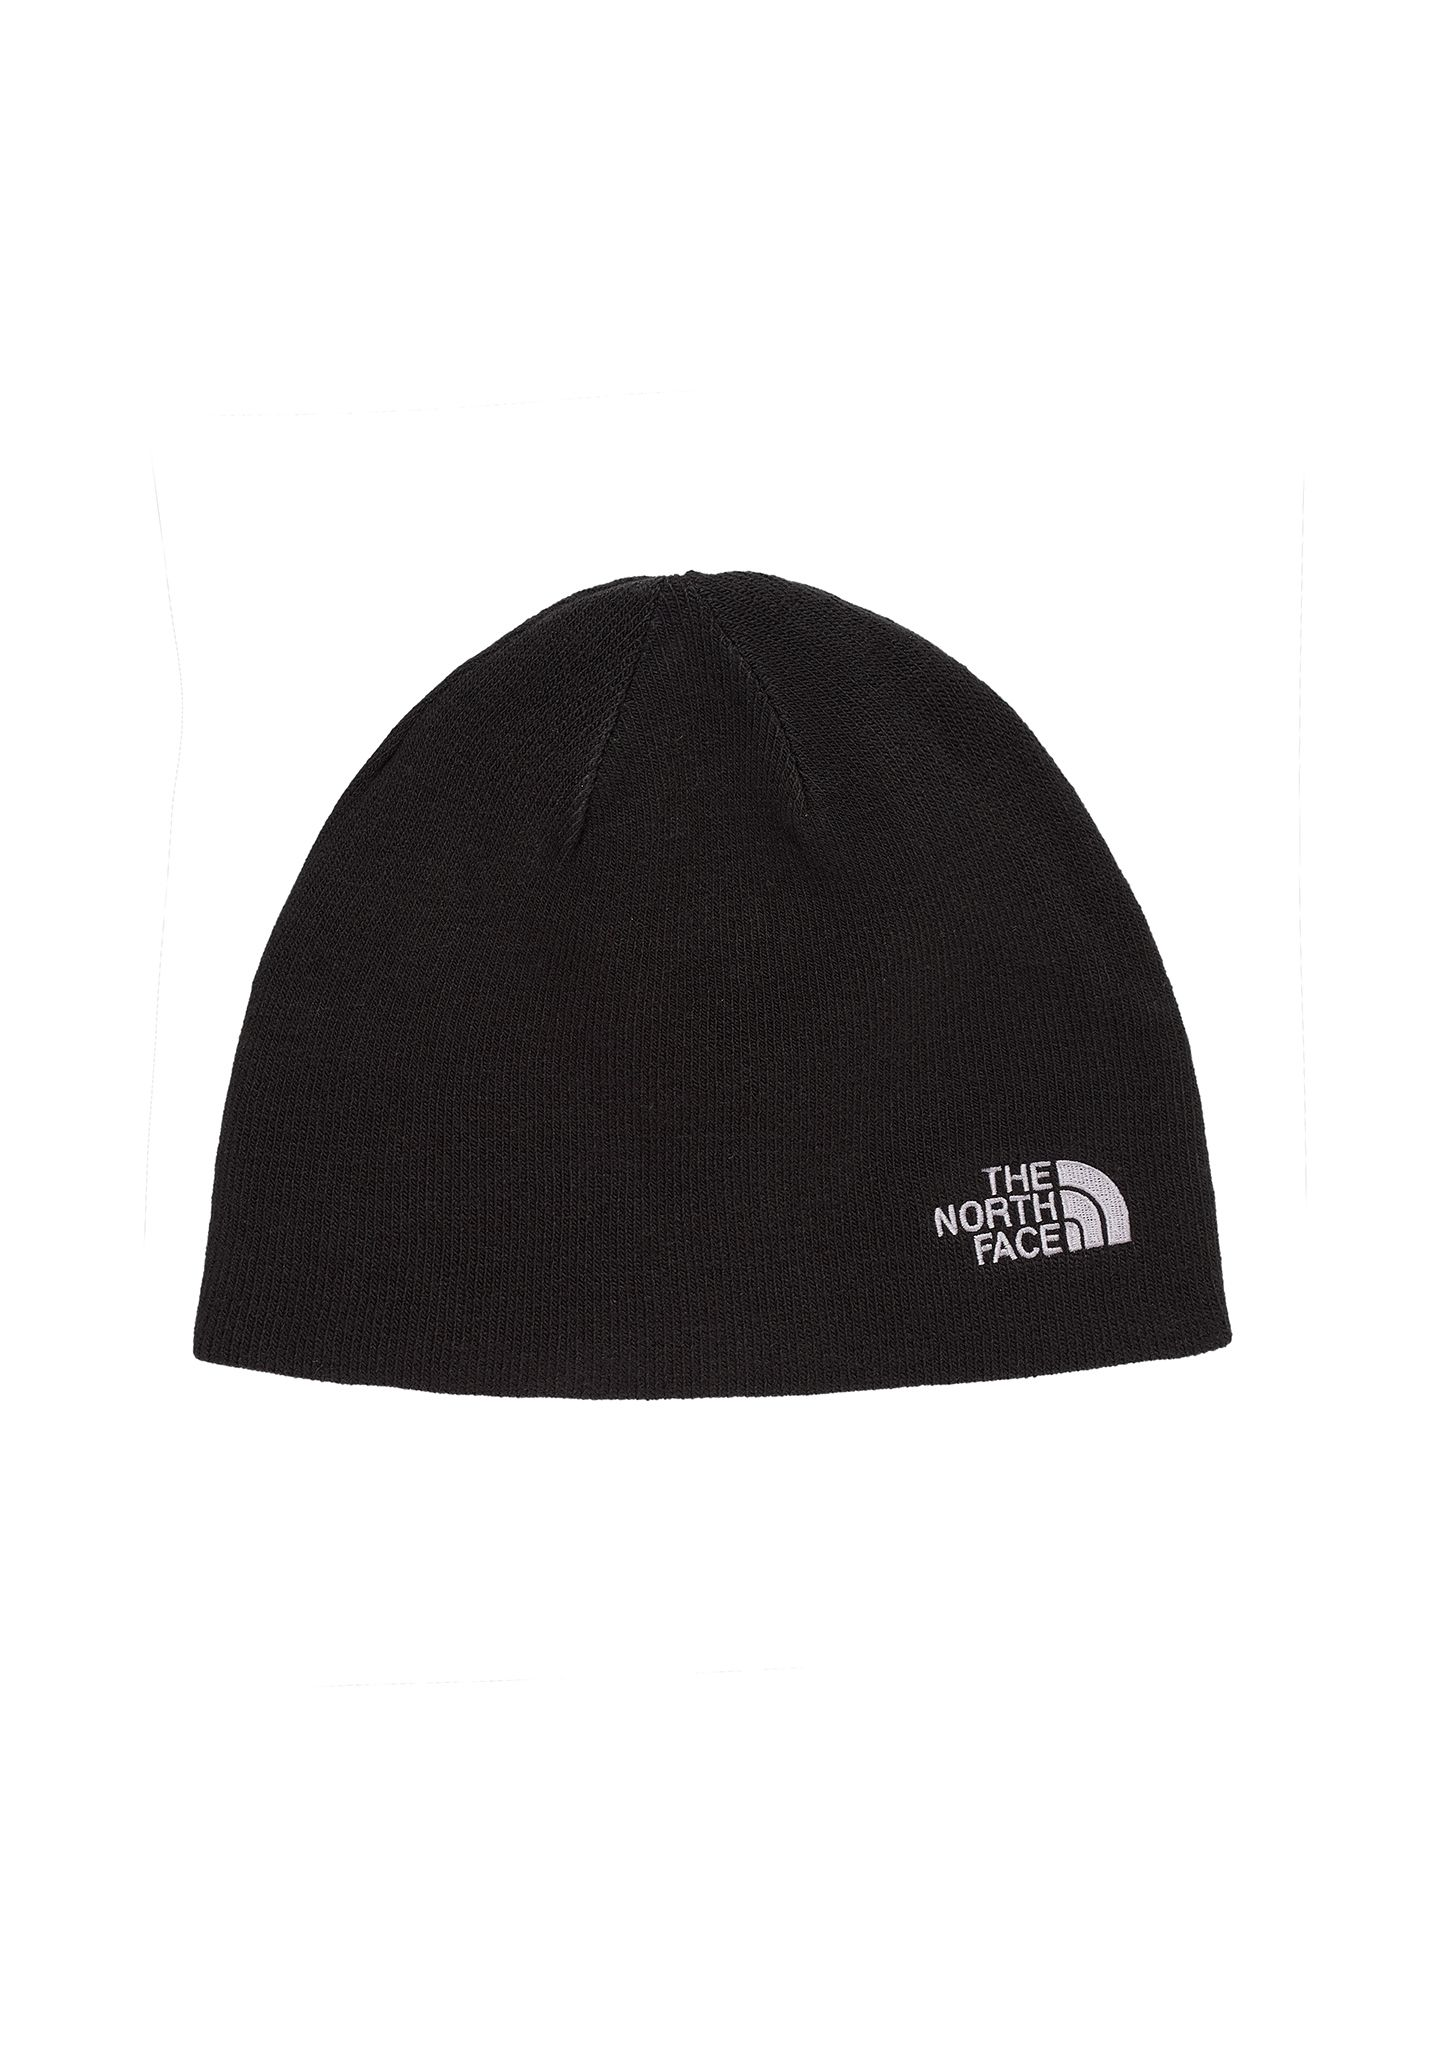 d24d61fc6c5 THE NORTH FACE Gateway - Beanie - Black - Planet Sports